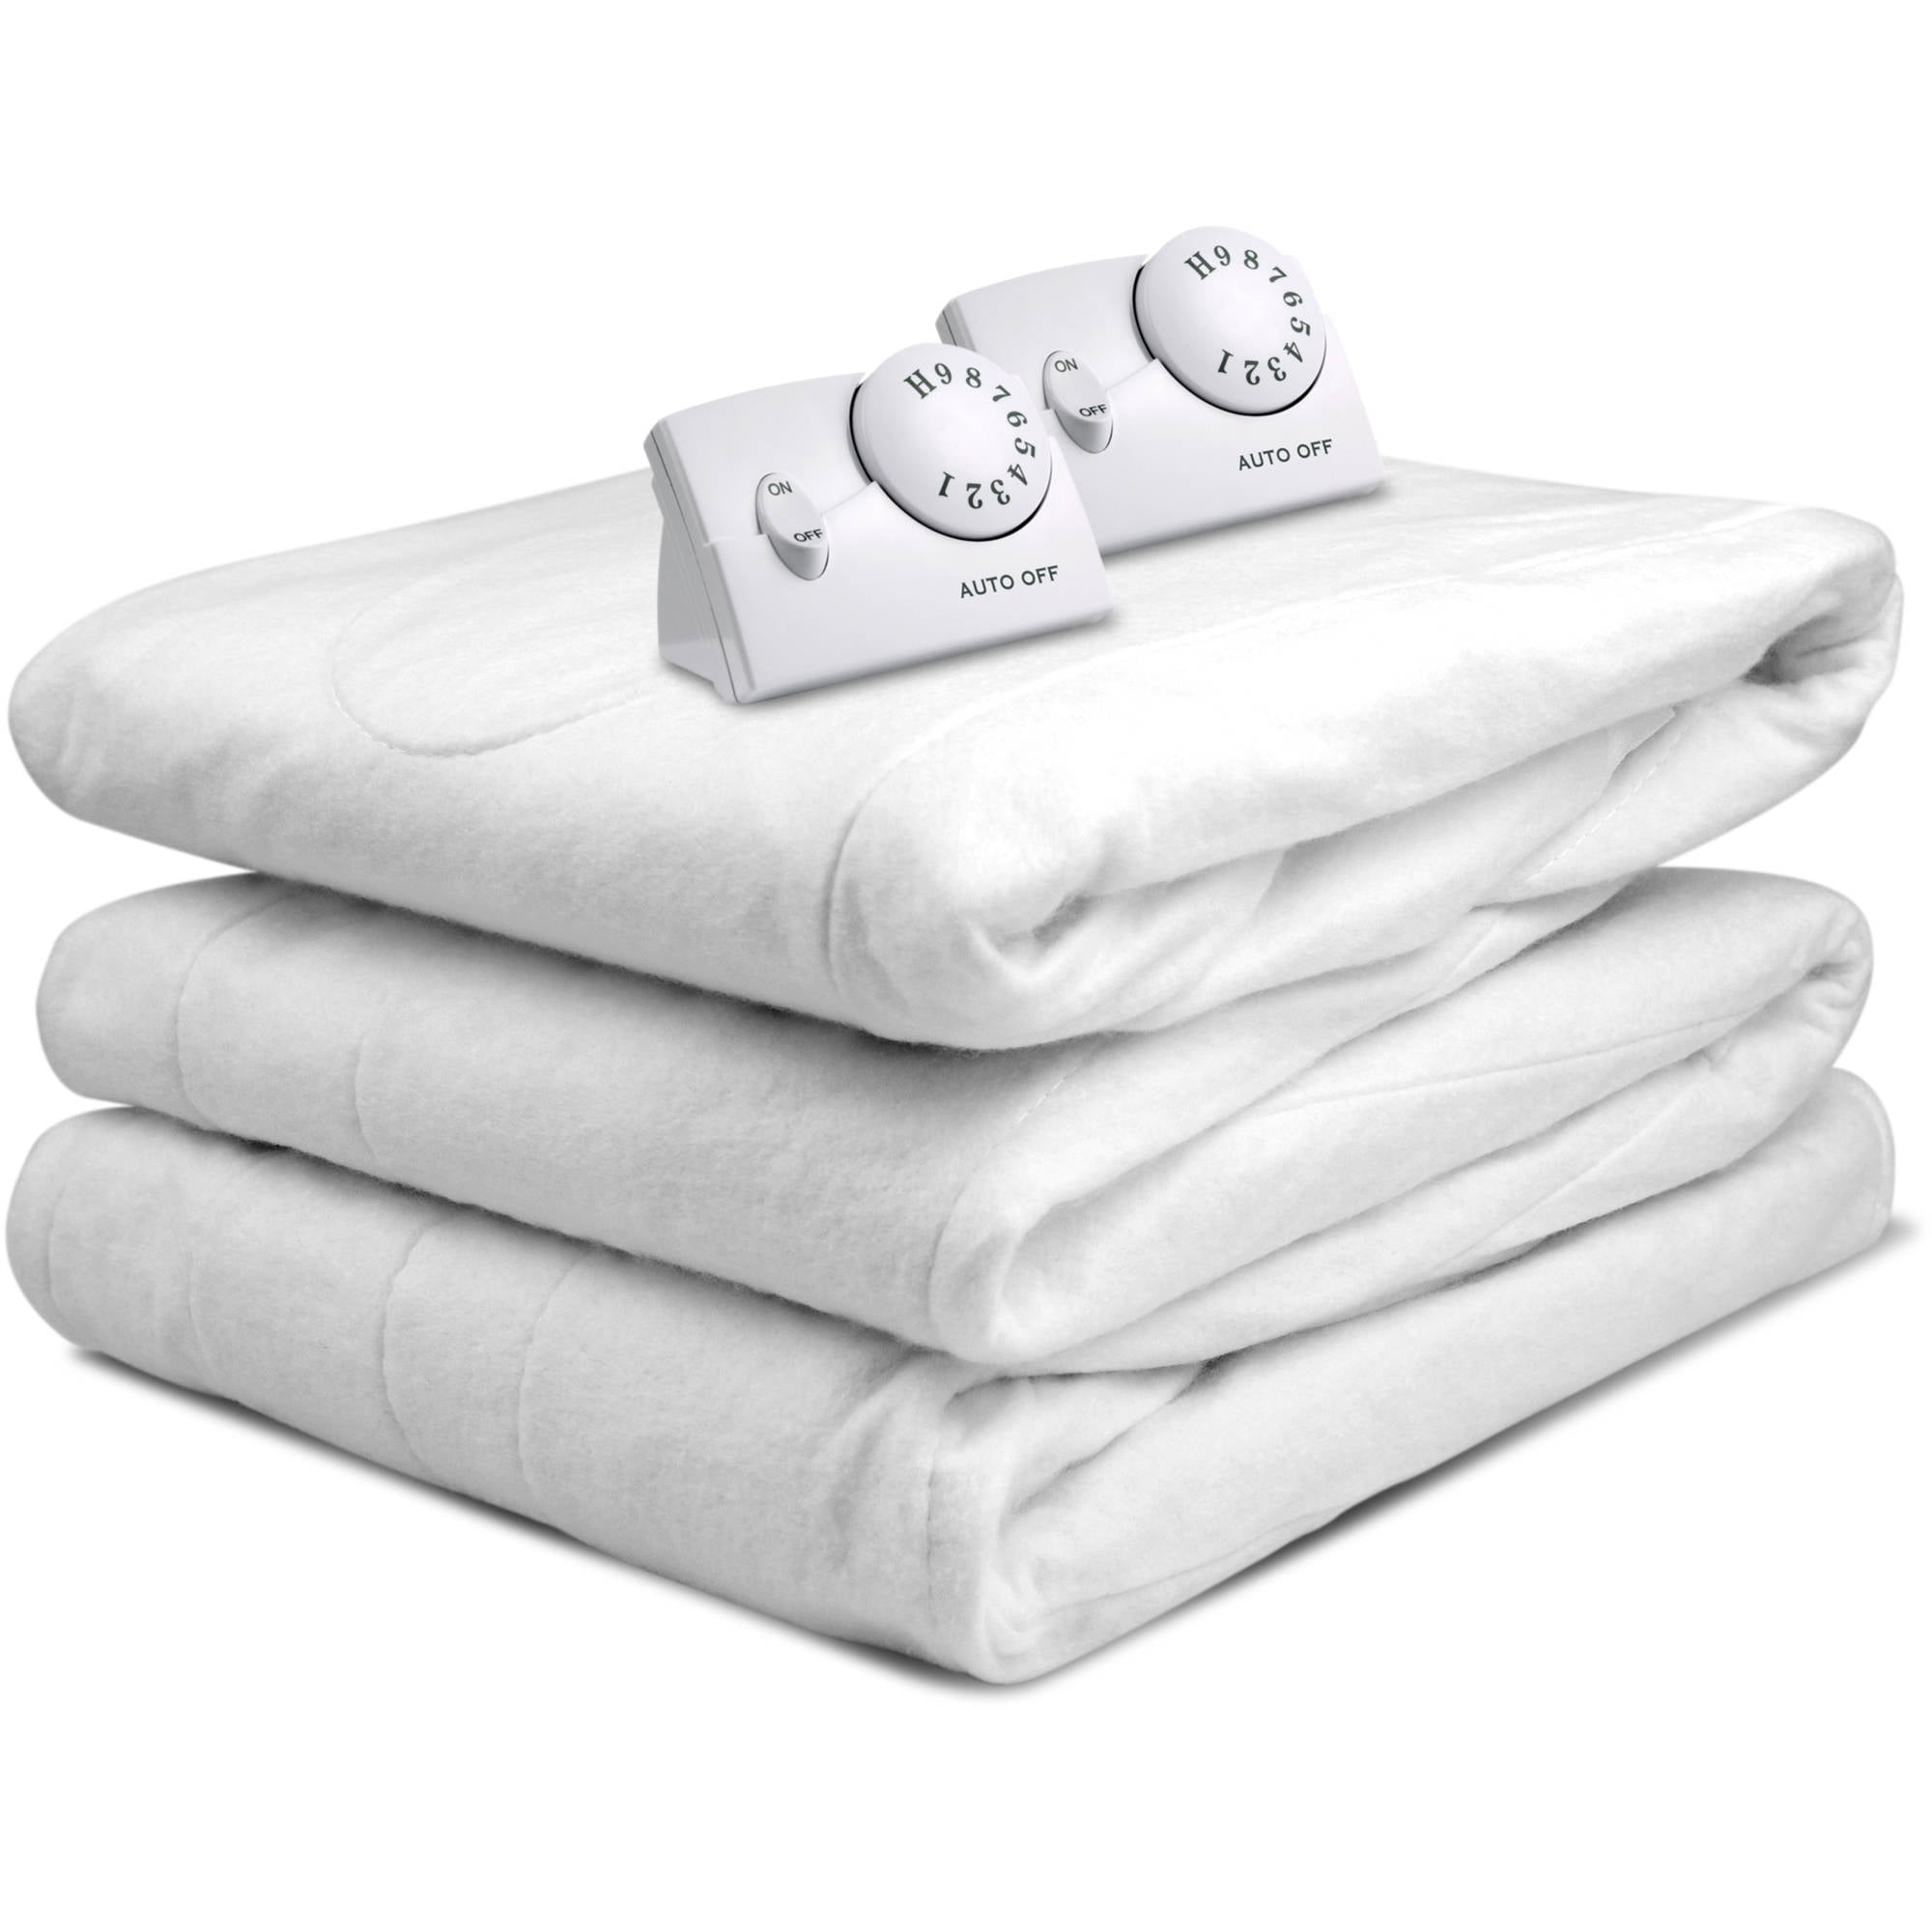 Biddeford Blankets Heated Mattress Pad - Walmart.com